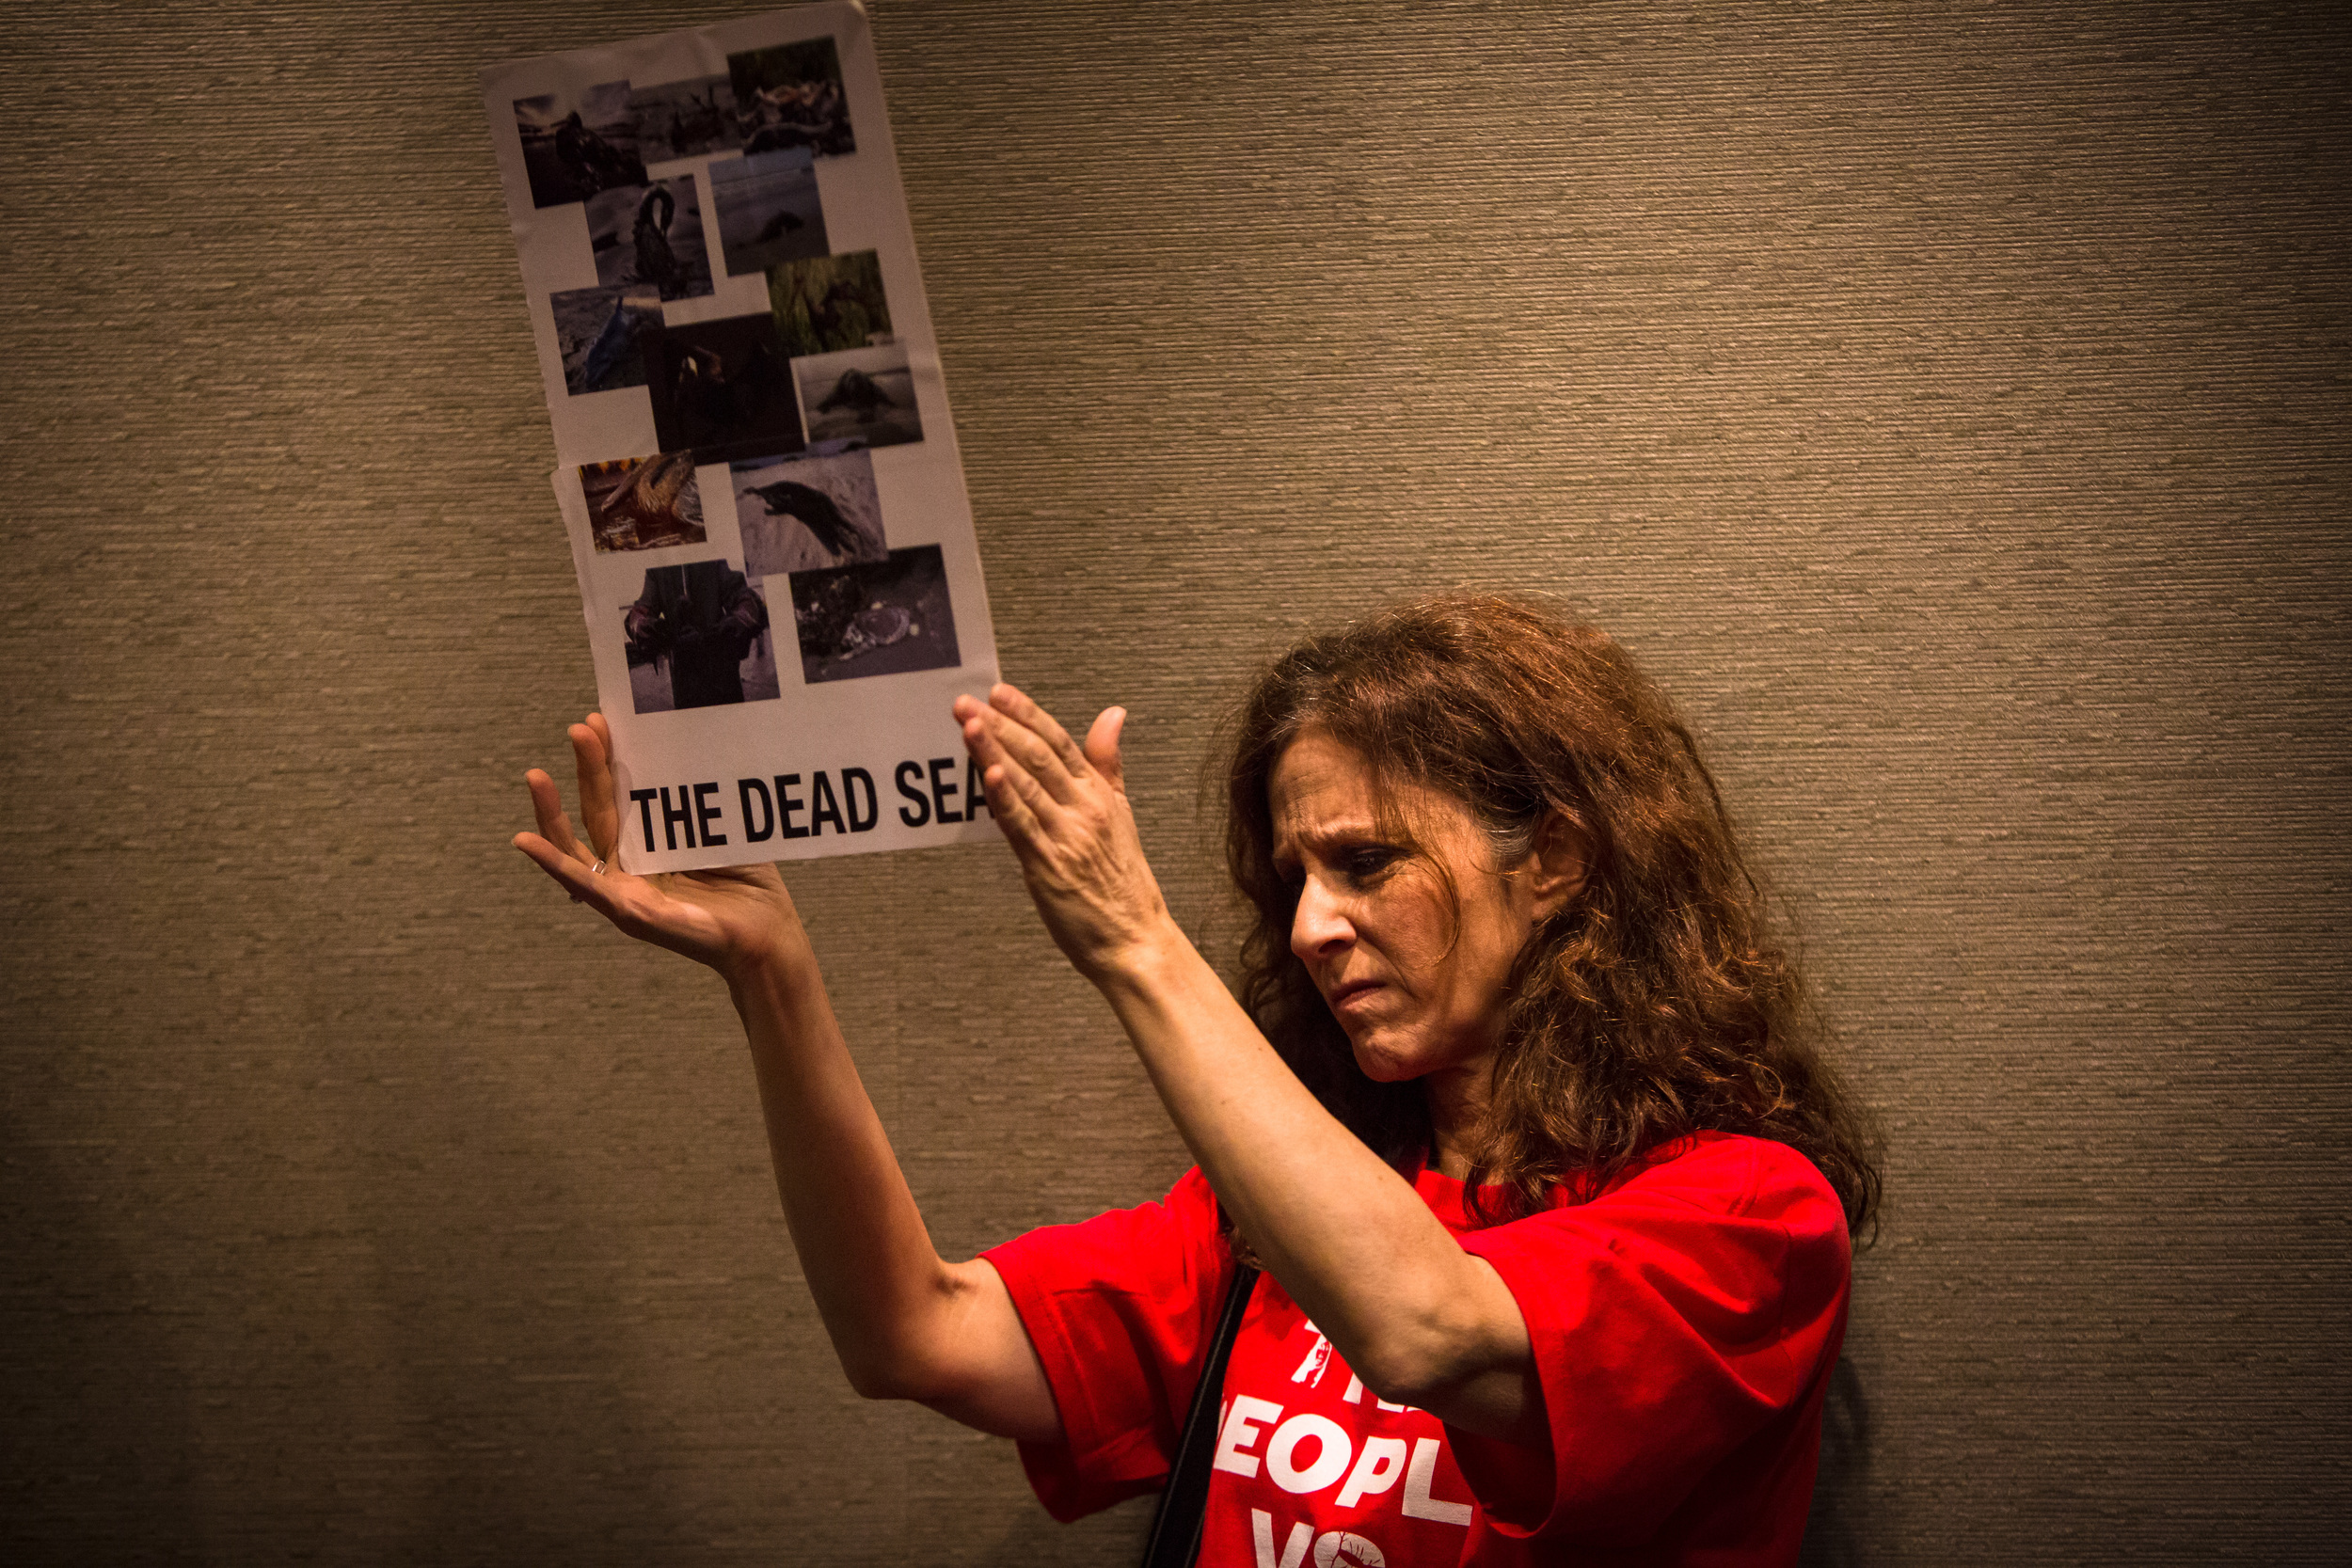 Marla Katz holds up a photos from the BP oil spill in protest of Shell's oil rig coming to Seattle during a meeting at the Port of Seattle on Tuesday, May 12, 2015. Members of the community packed in to speak to the Port Commissioners before they vote on whether to allow the rig to come to port.